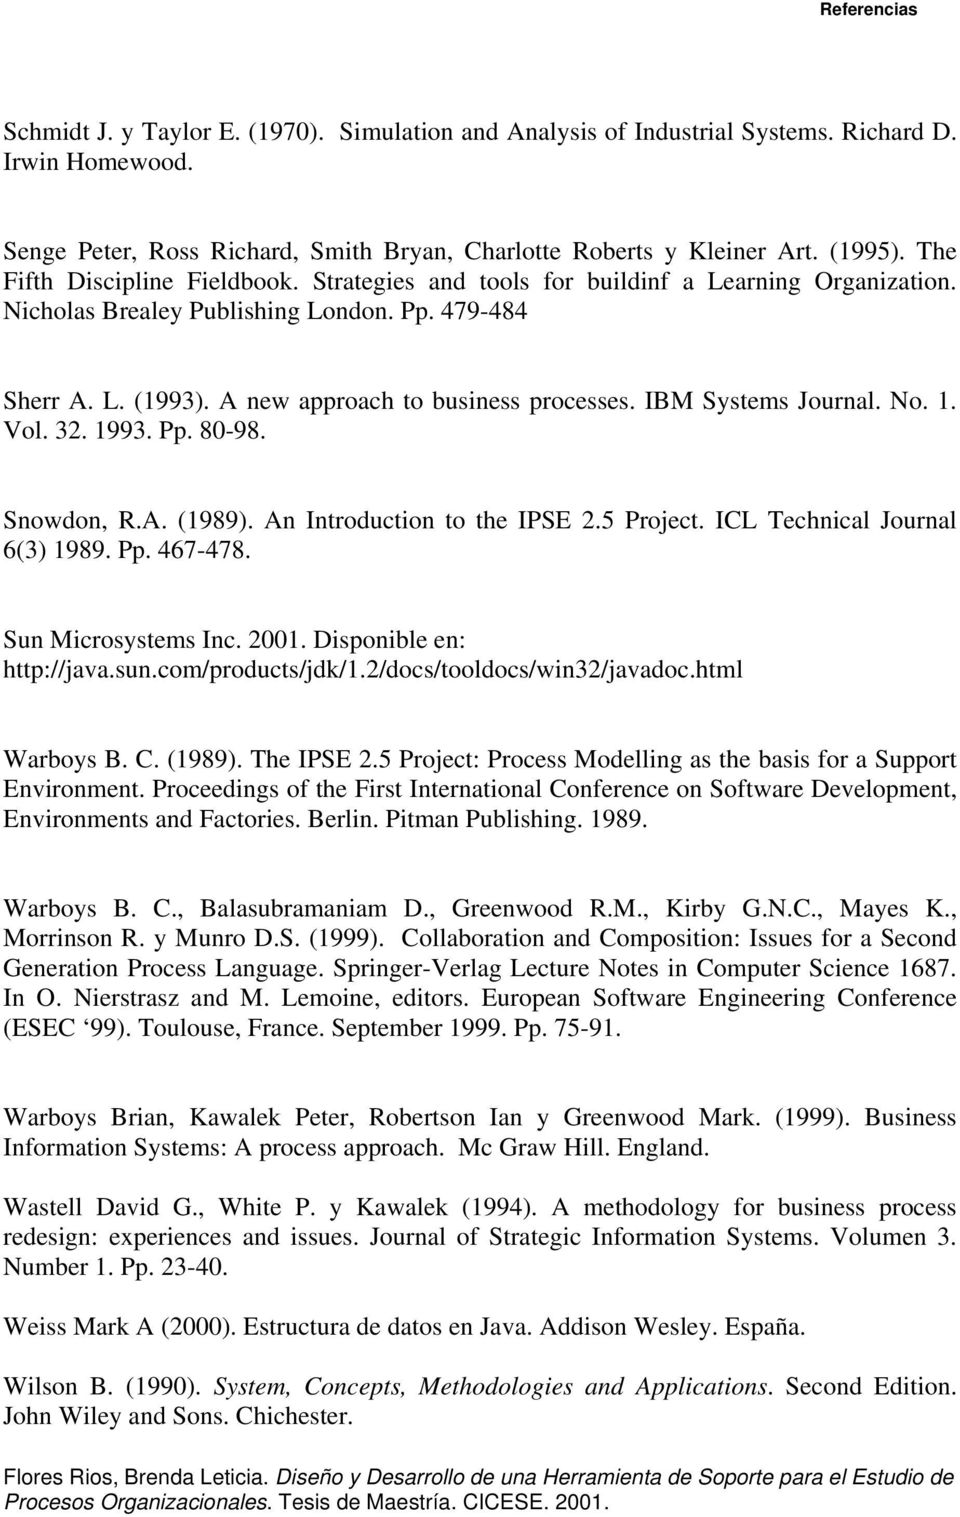 IBM Systems Journal. No. 1. Vol. 32. 1993. Pp. 80-98. Snowdon, R.A. (1989). An Introduction to the IPSE 2.5 Project. ICL Technical Journal 6(3) 1989. Pp. 467-478. Sun Microsystems Inc. 2001.